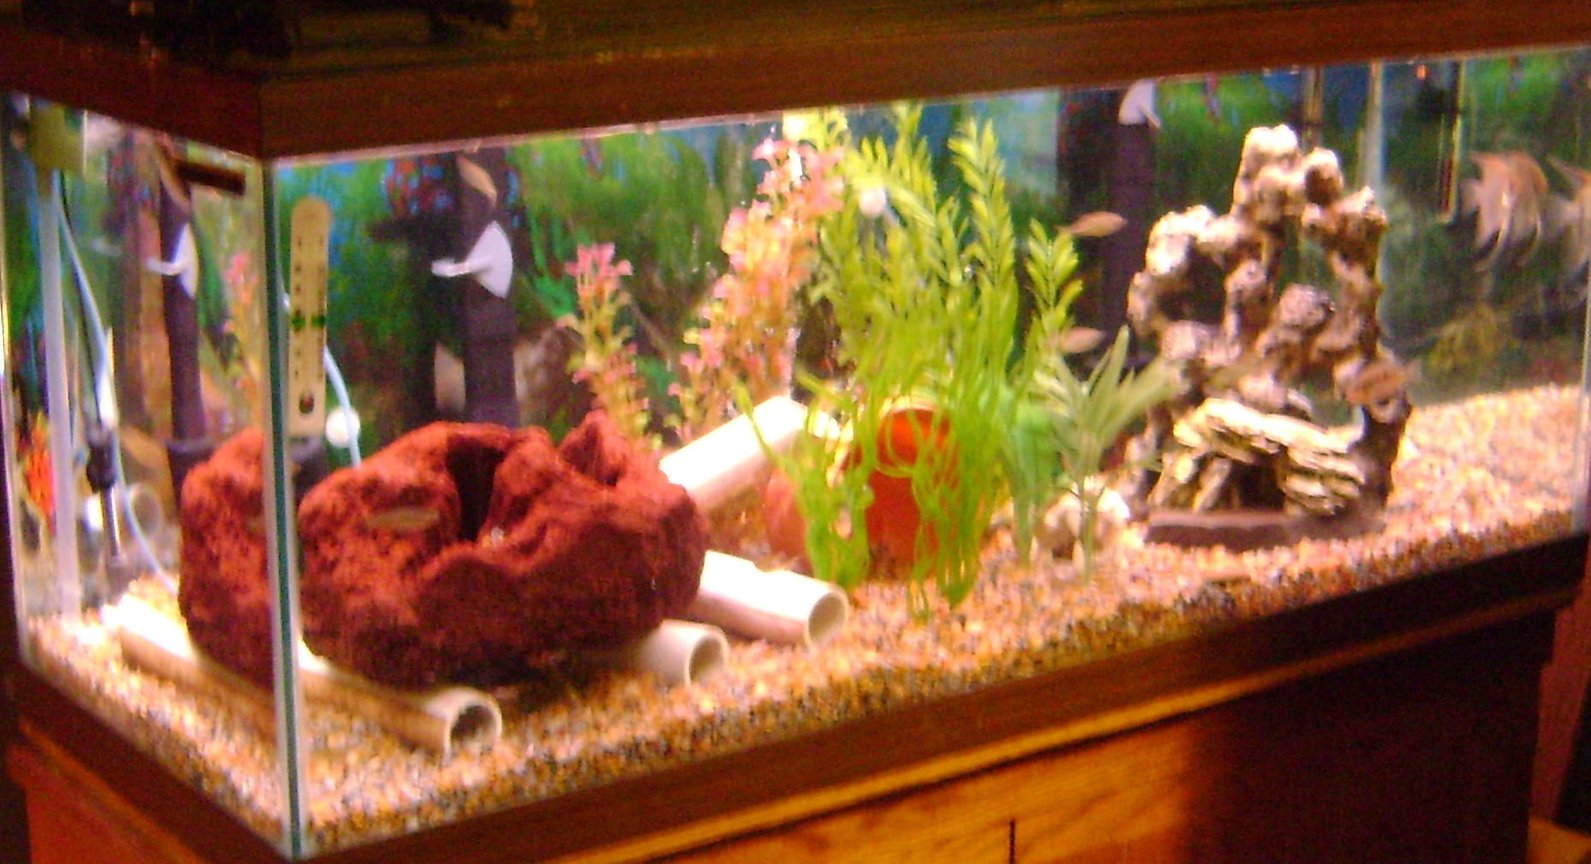 75 gallons freshwater fish tank (mostly fish and non-living decorations) - full tank view